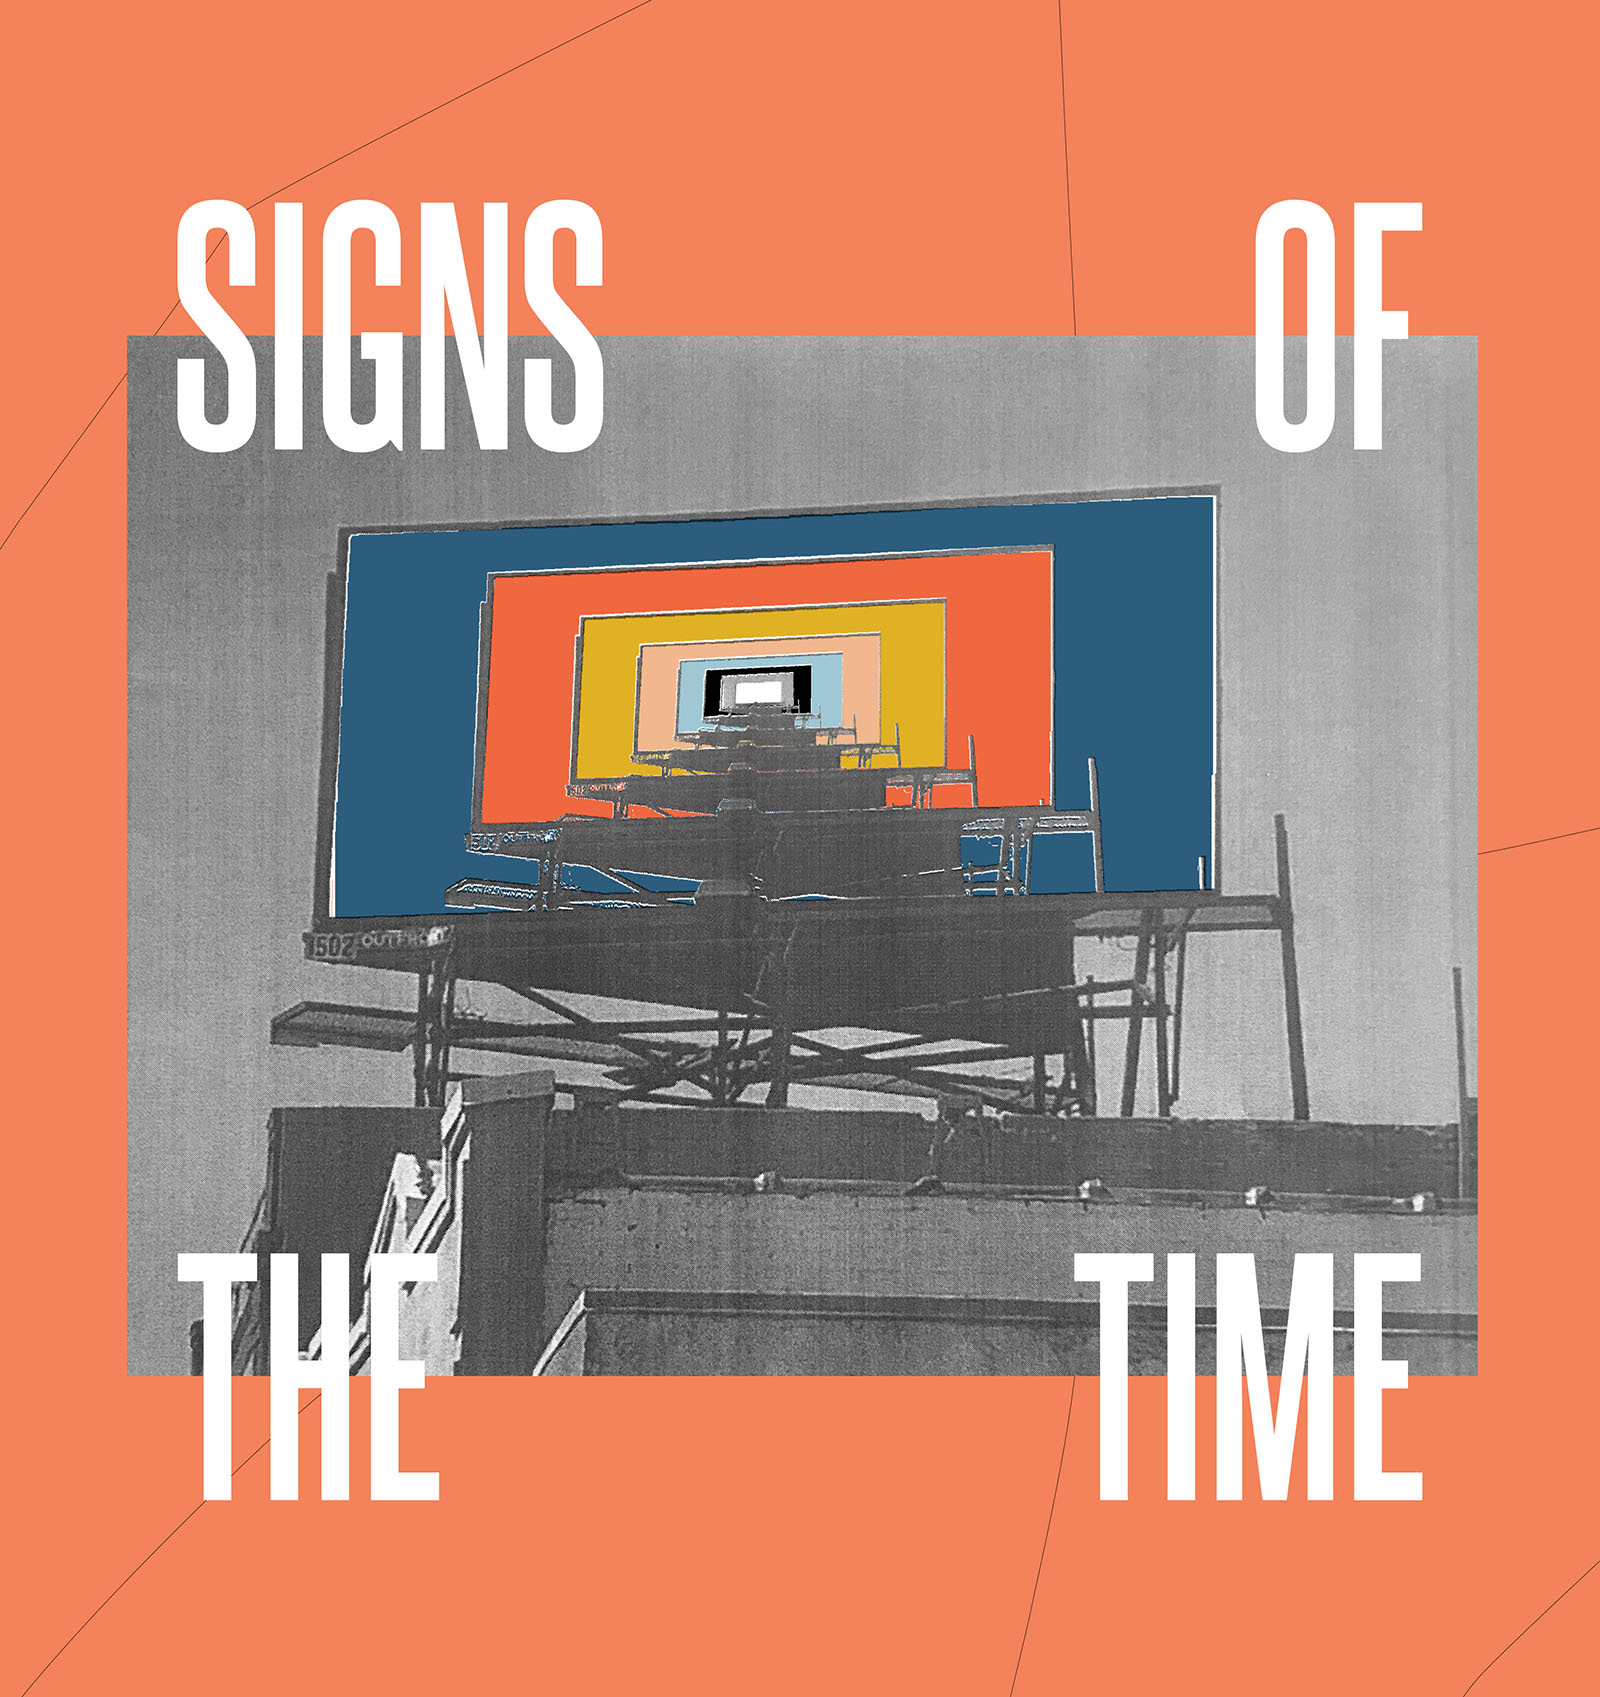 Signs of the Time Exhibition_insta 1.72.jpg